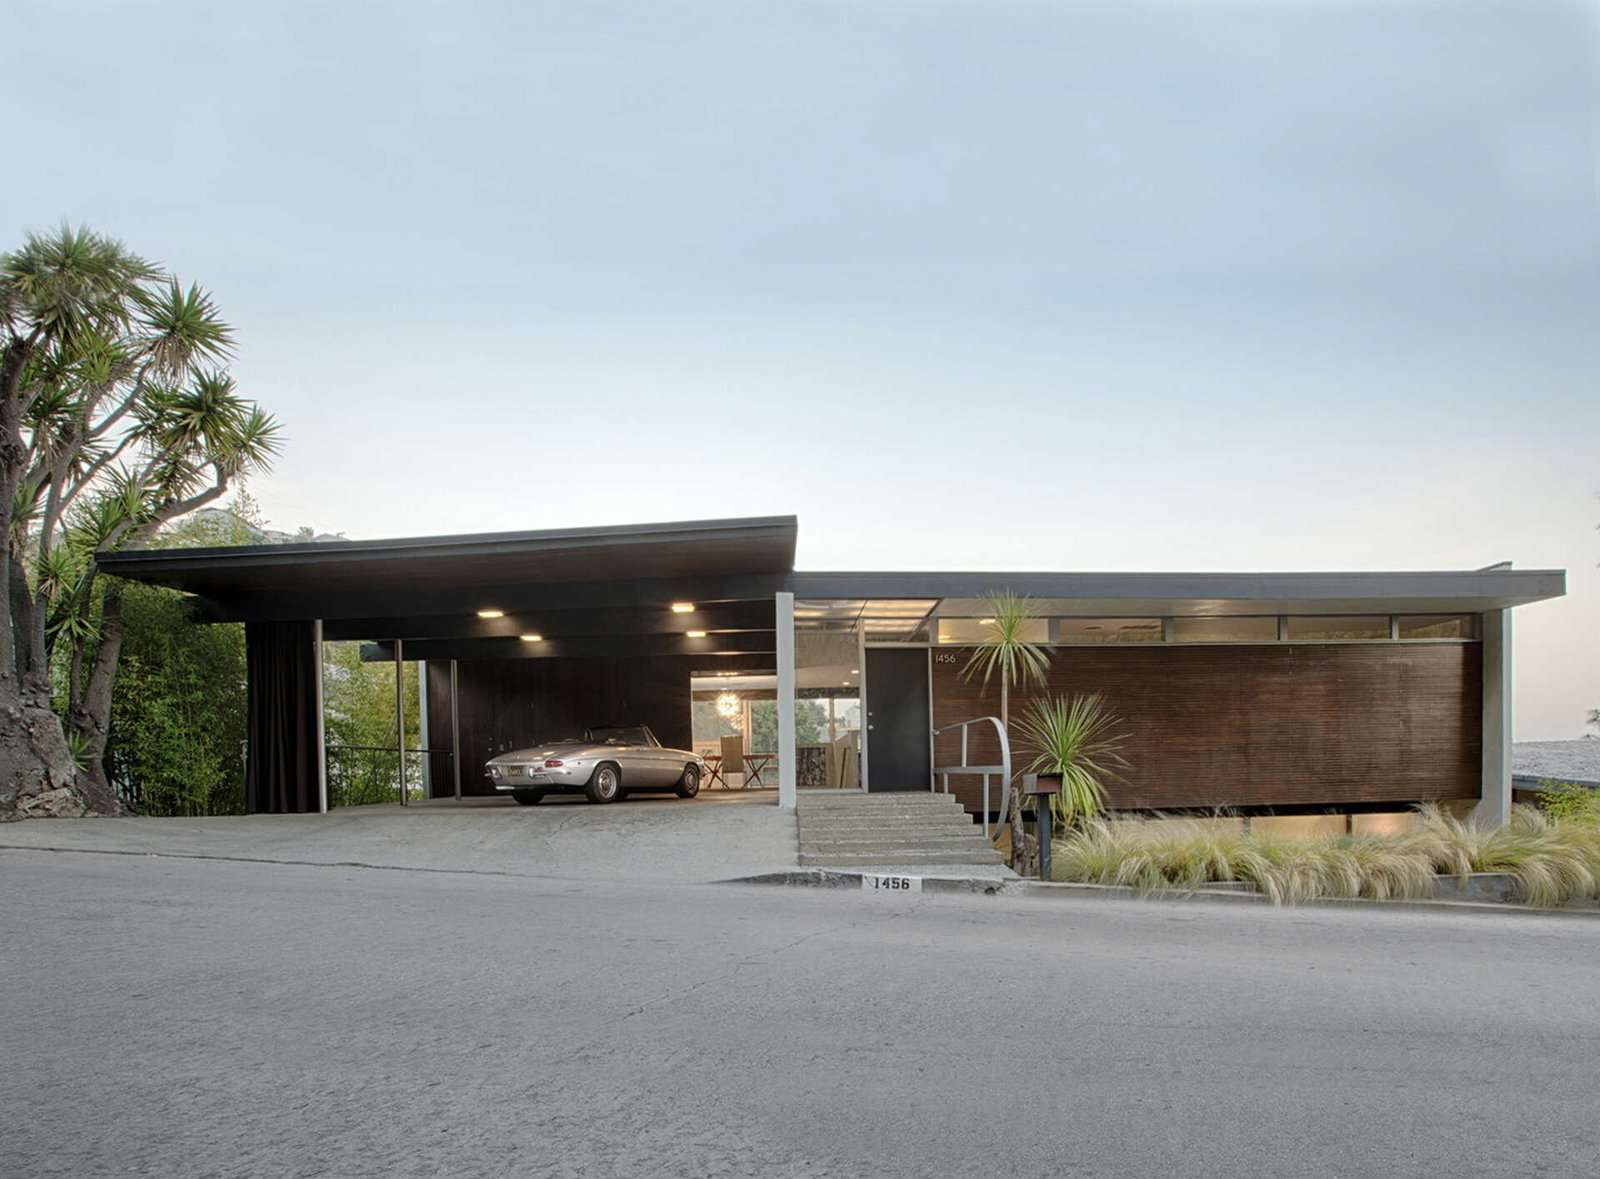 """The 1958 Lew House by Richard Neutra is located at <span style=""""font-family: Theinhardt, -apple-system, BlinkMacSystemFont, &quot;Segoe UI&quot;, Roboto, Oxygen-Sans, Ubuntu, Cantarell, &quot;Helvetica Neue&quot;, sans-serif;"""">1456 Sunset Plaza Drive, just a few turns up from Sunset Boulevard in West Hollywood. The front facade is dominated by a double carport, which Neutra designed with floor-to-ceiling glass along two sides facing the interior.</span>"""